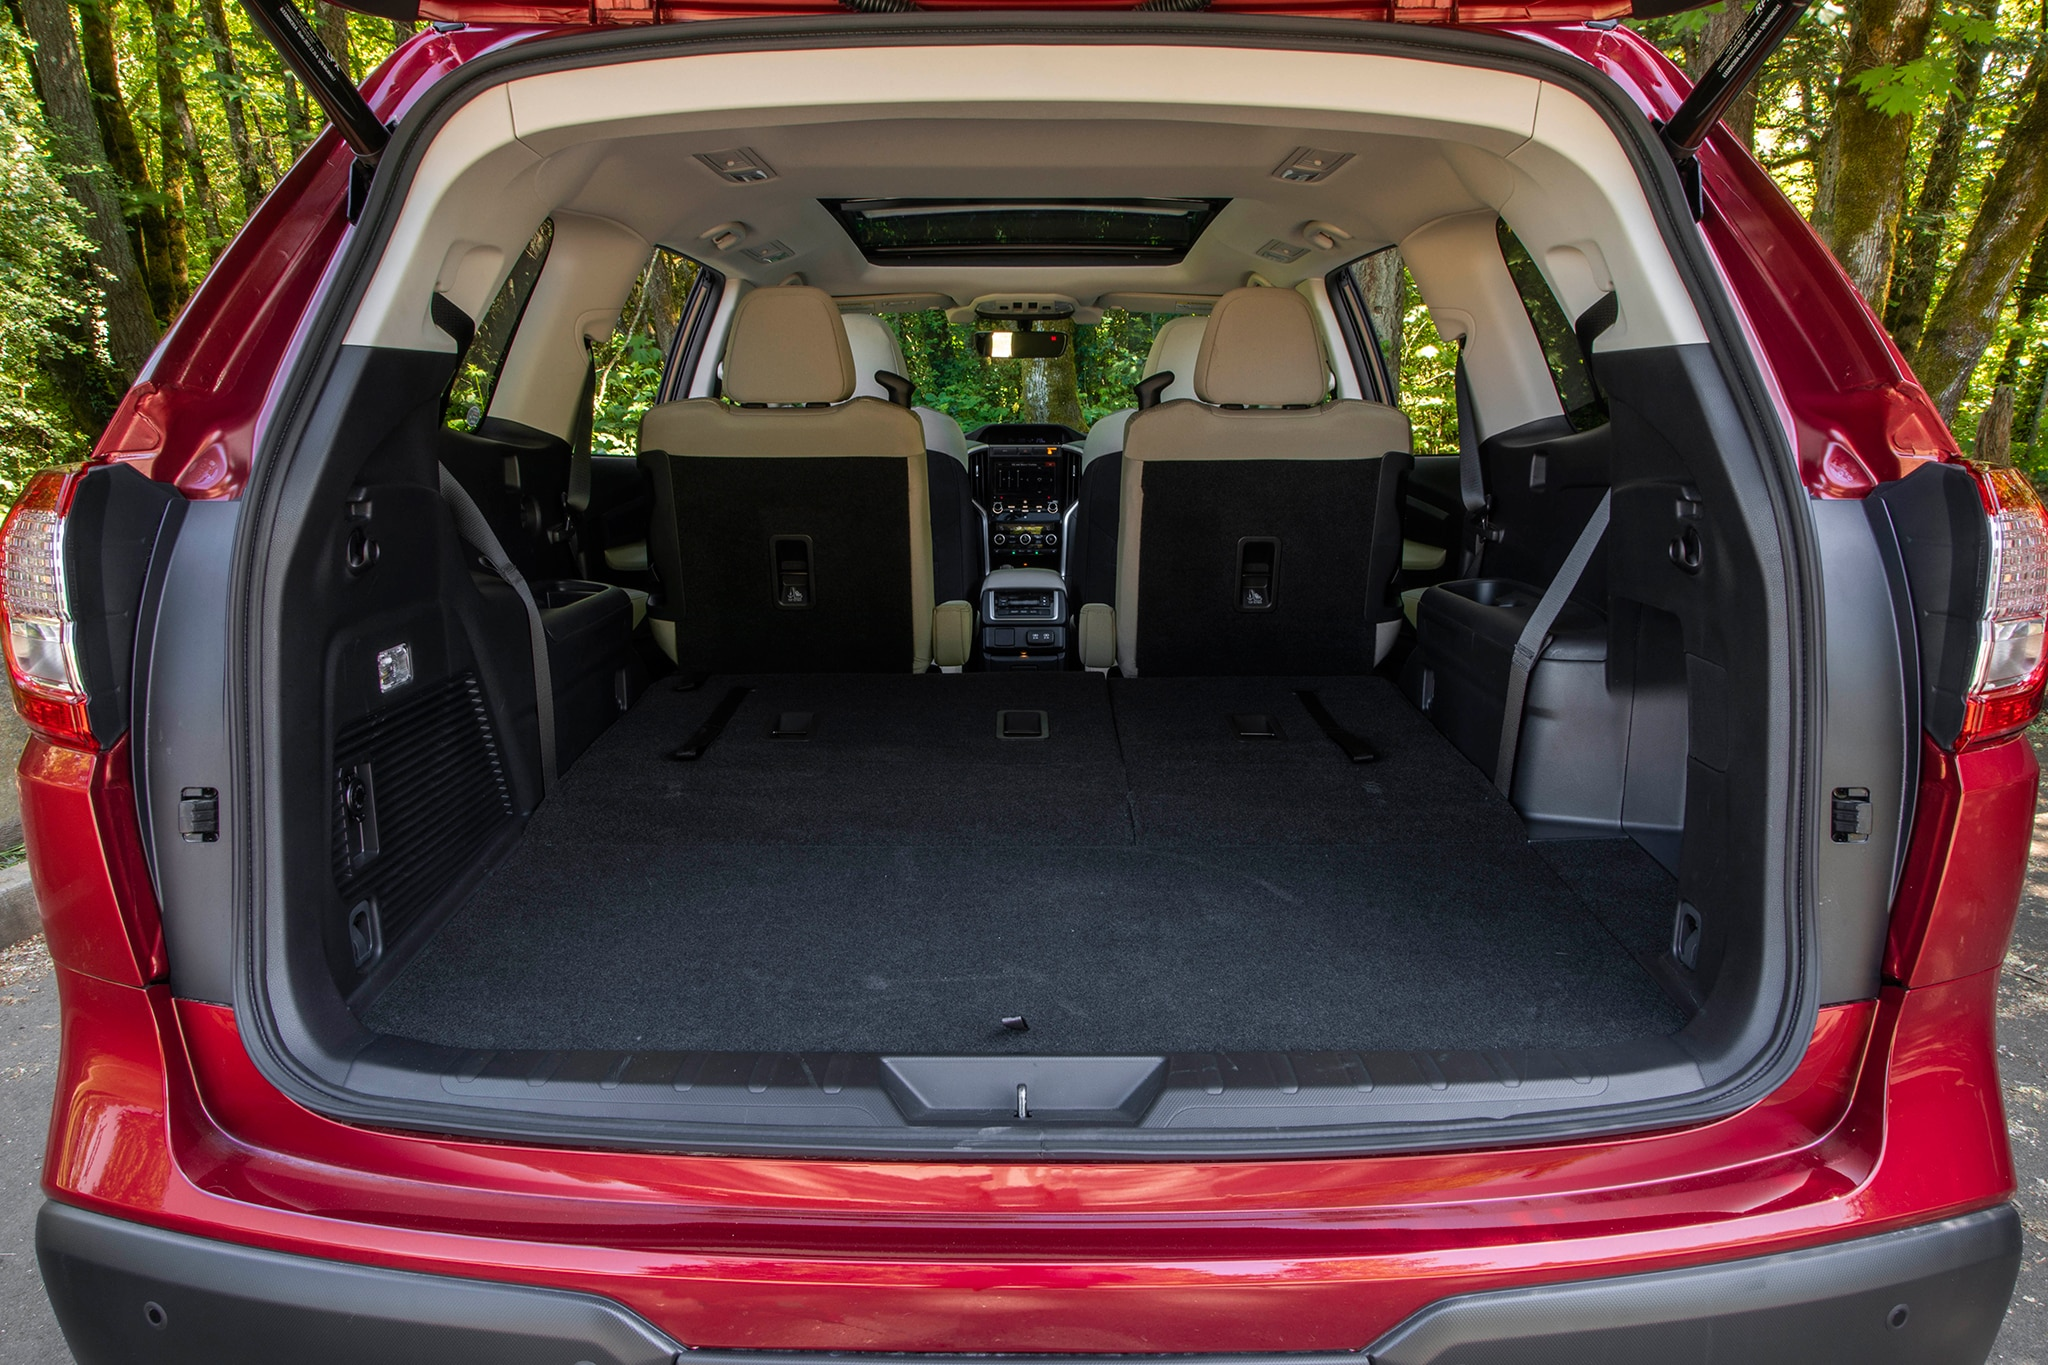 2019 Subaru Ascent First Drive Review | Automobile Magazine